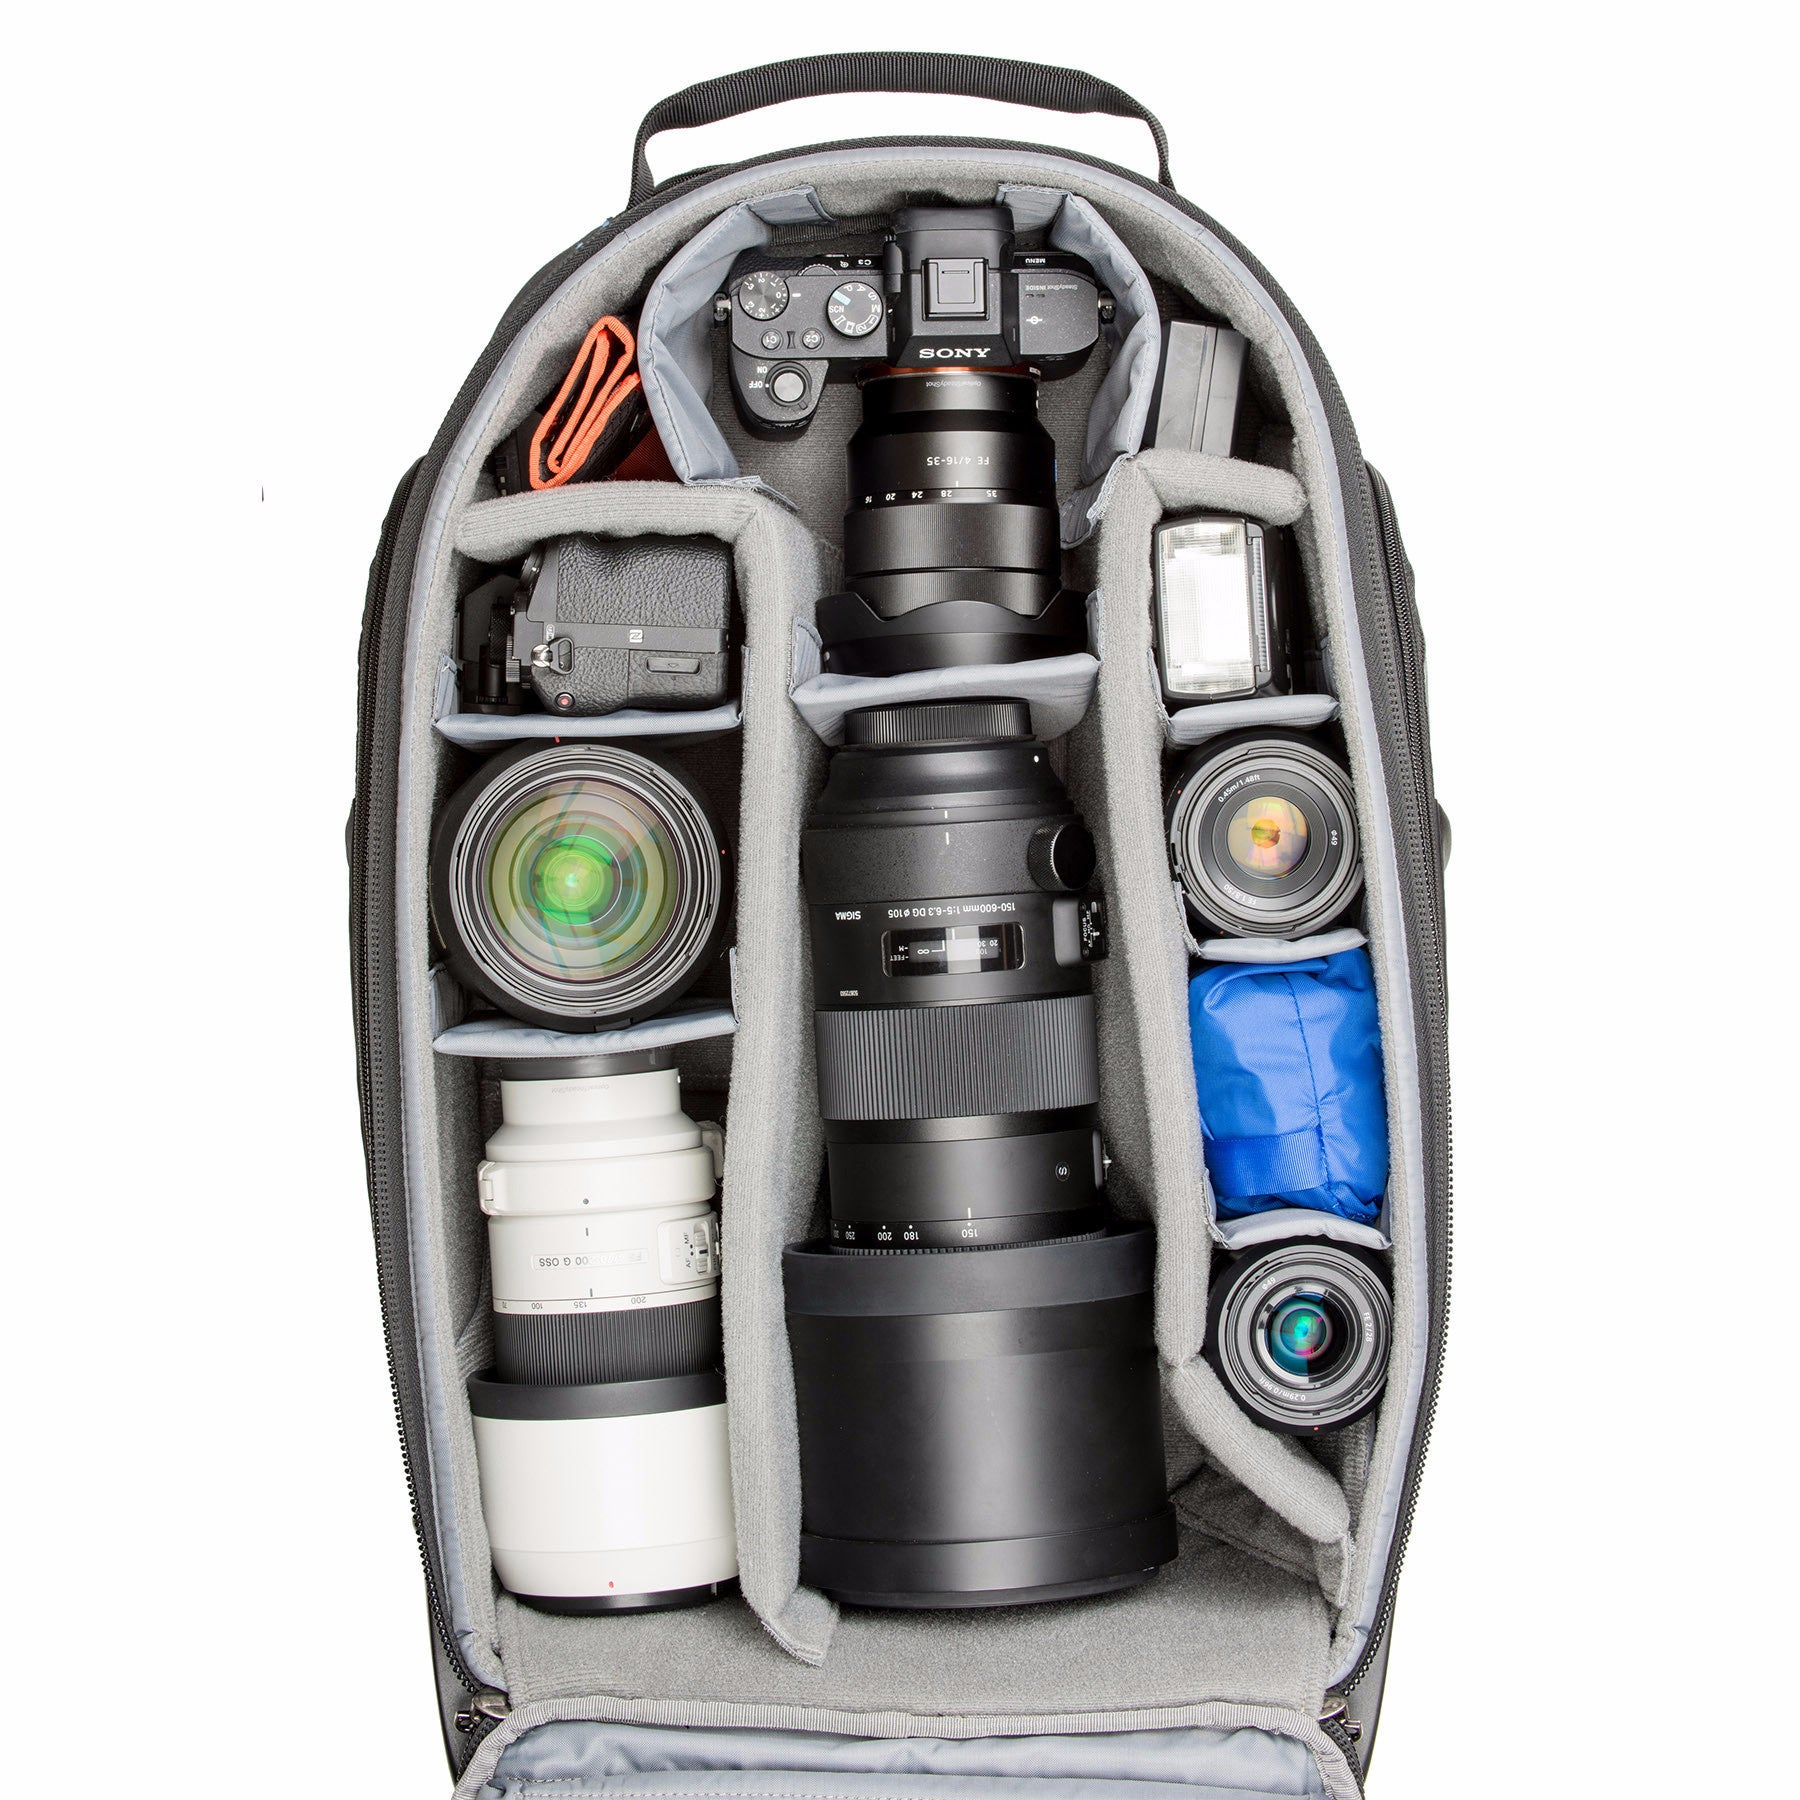 Adjustable dividers allow a customized fit for your DSLR or Mirrorless gear